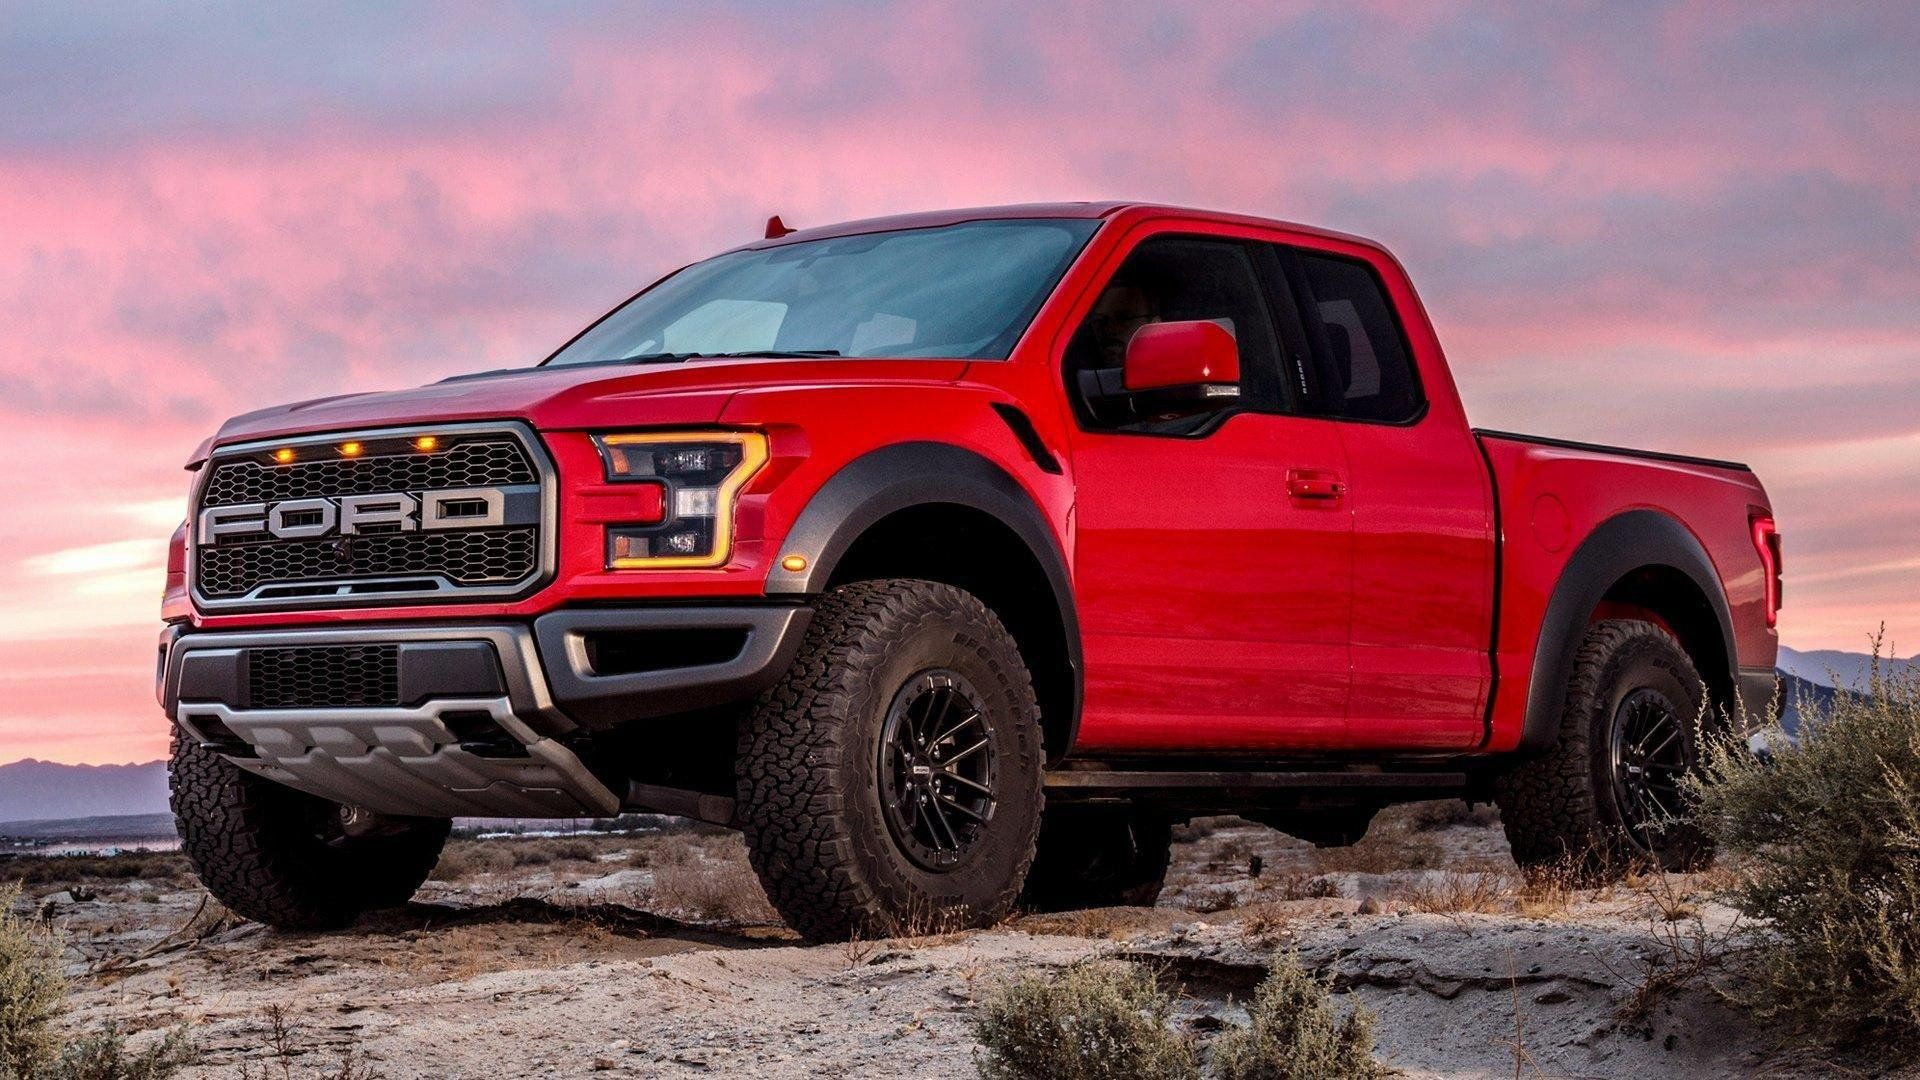 Ford F150 wallpaper for laptop